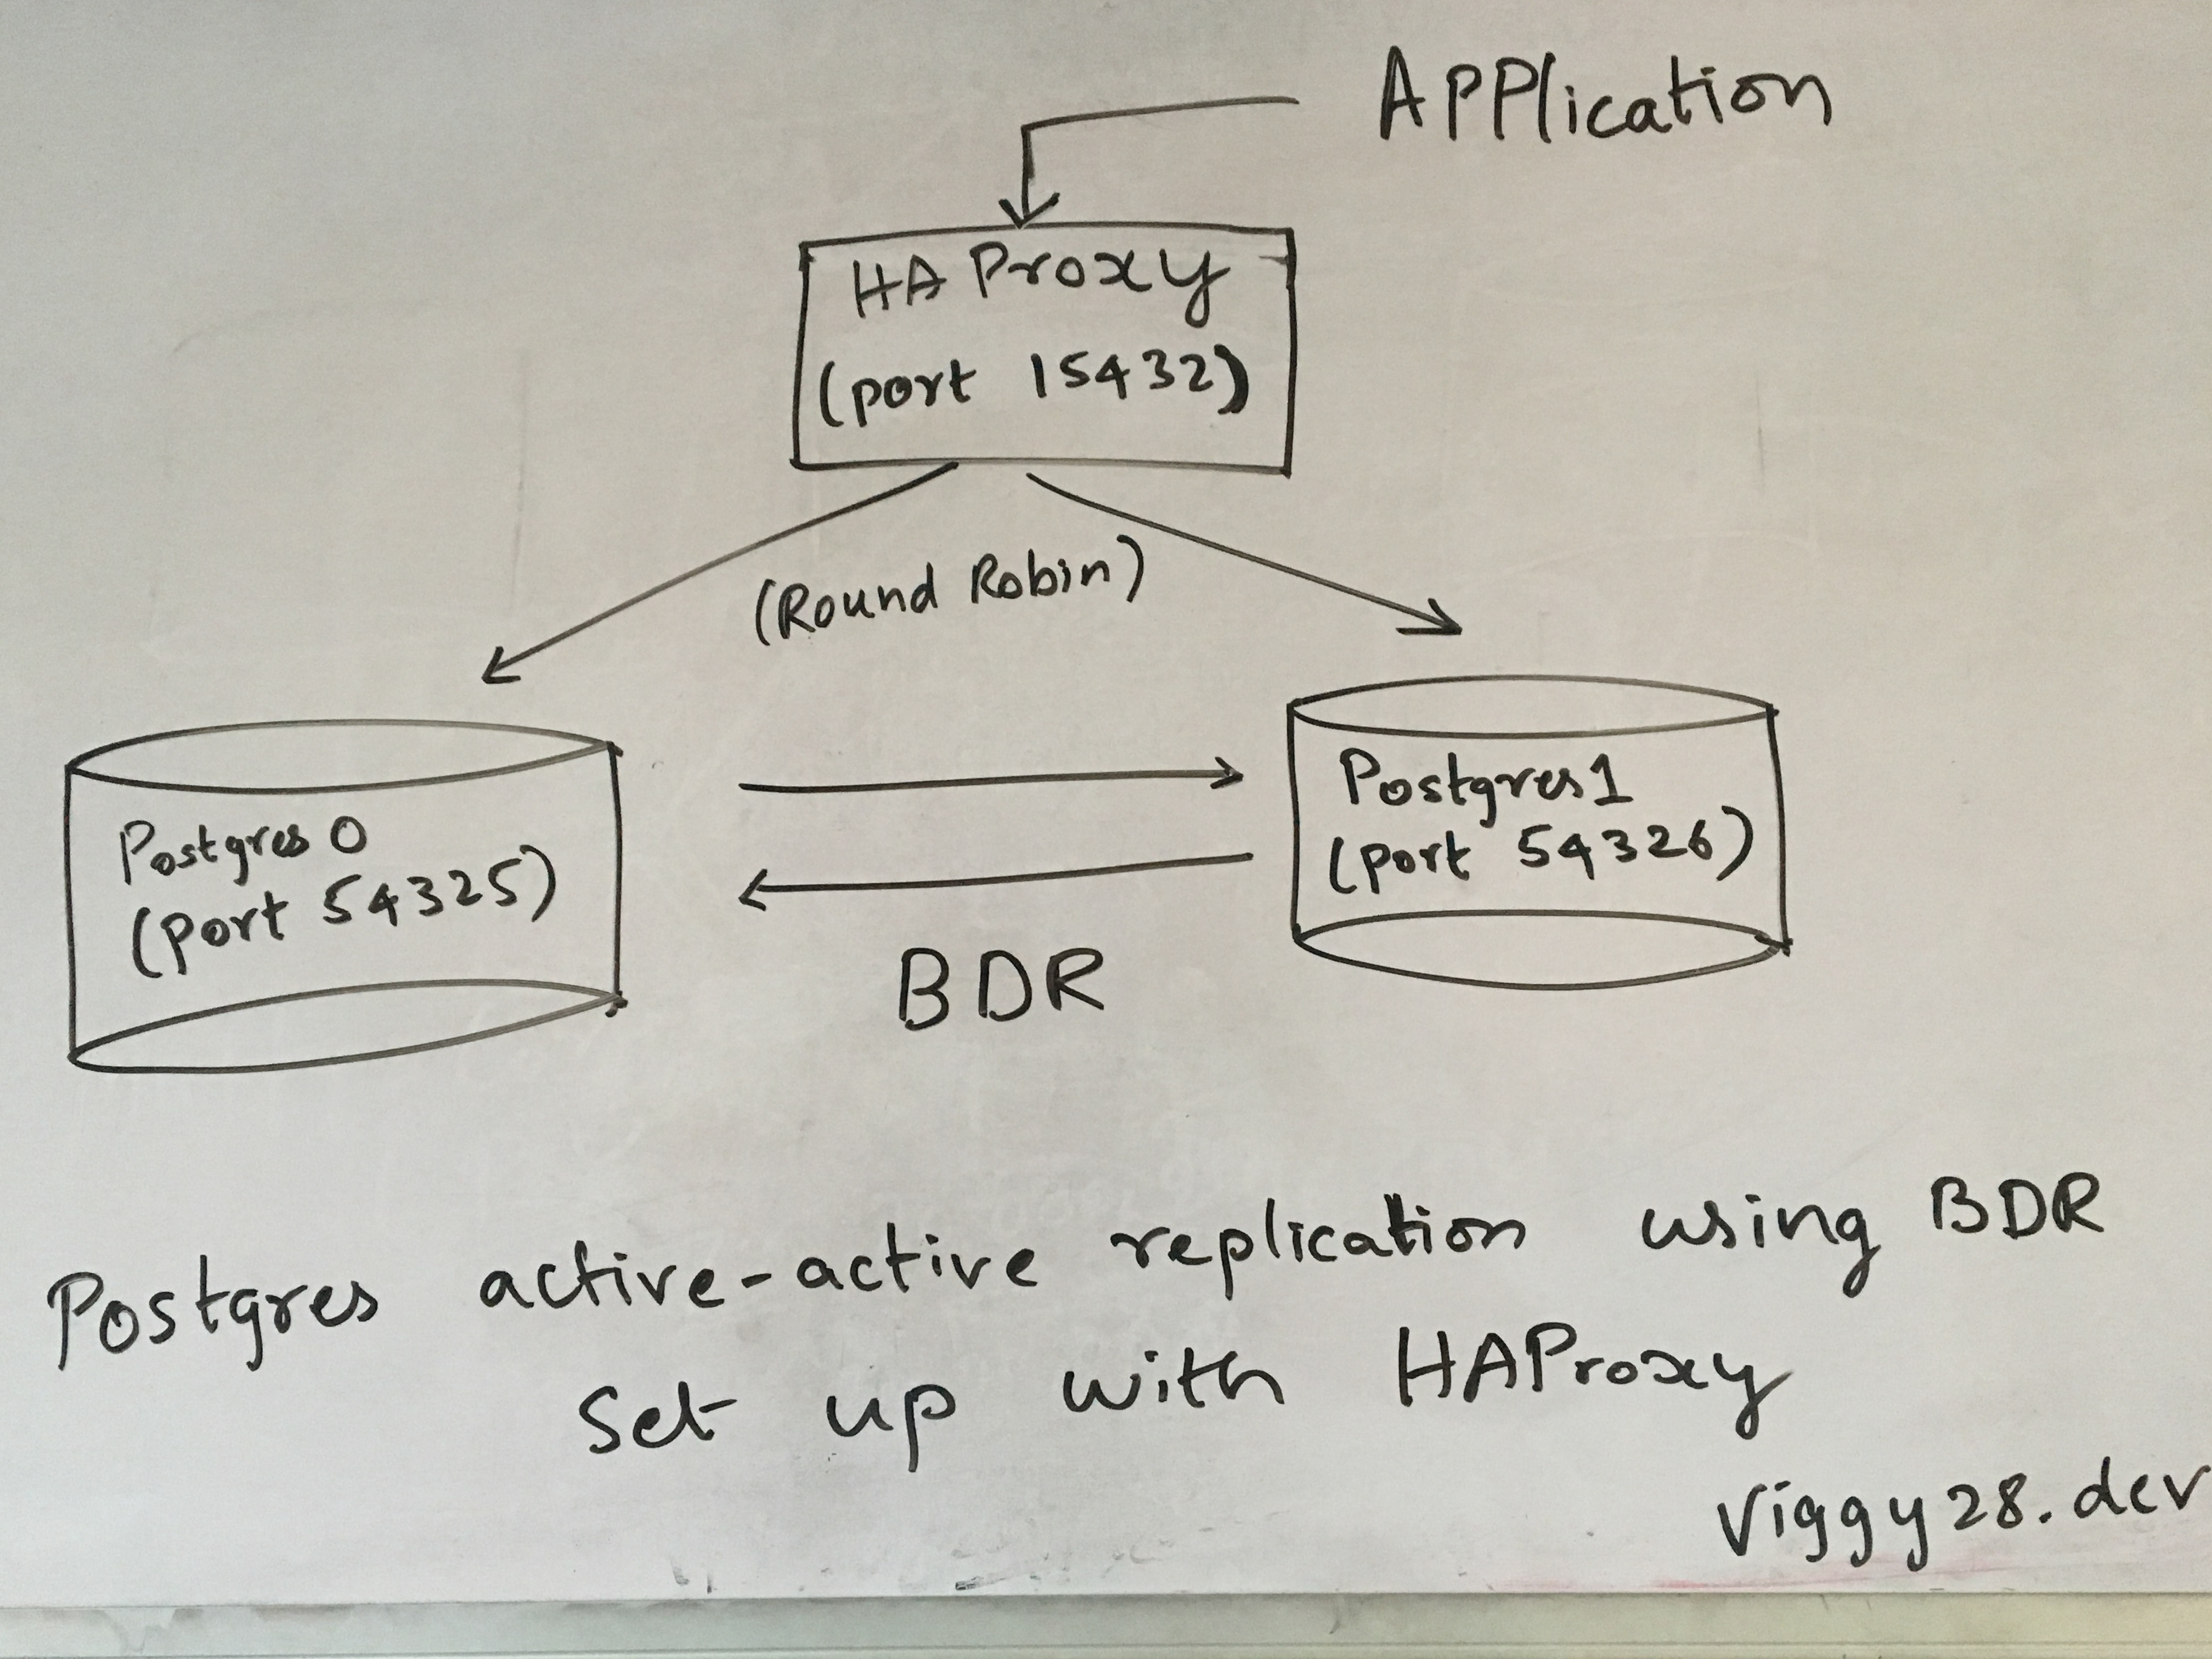 Postgres active-active replication using BDR set up with HAProxy